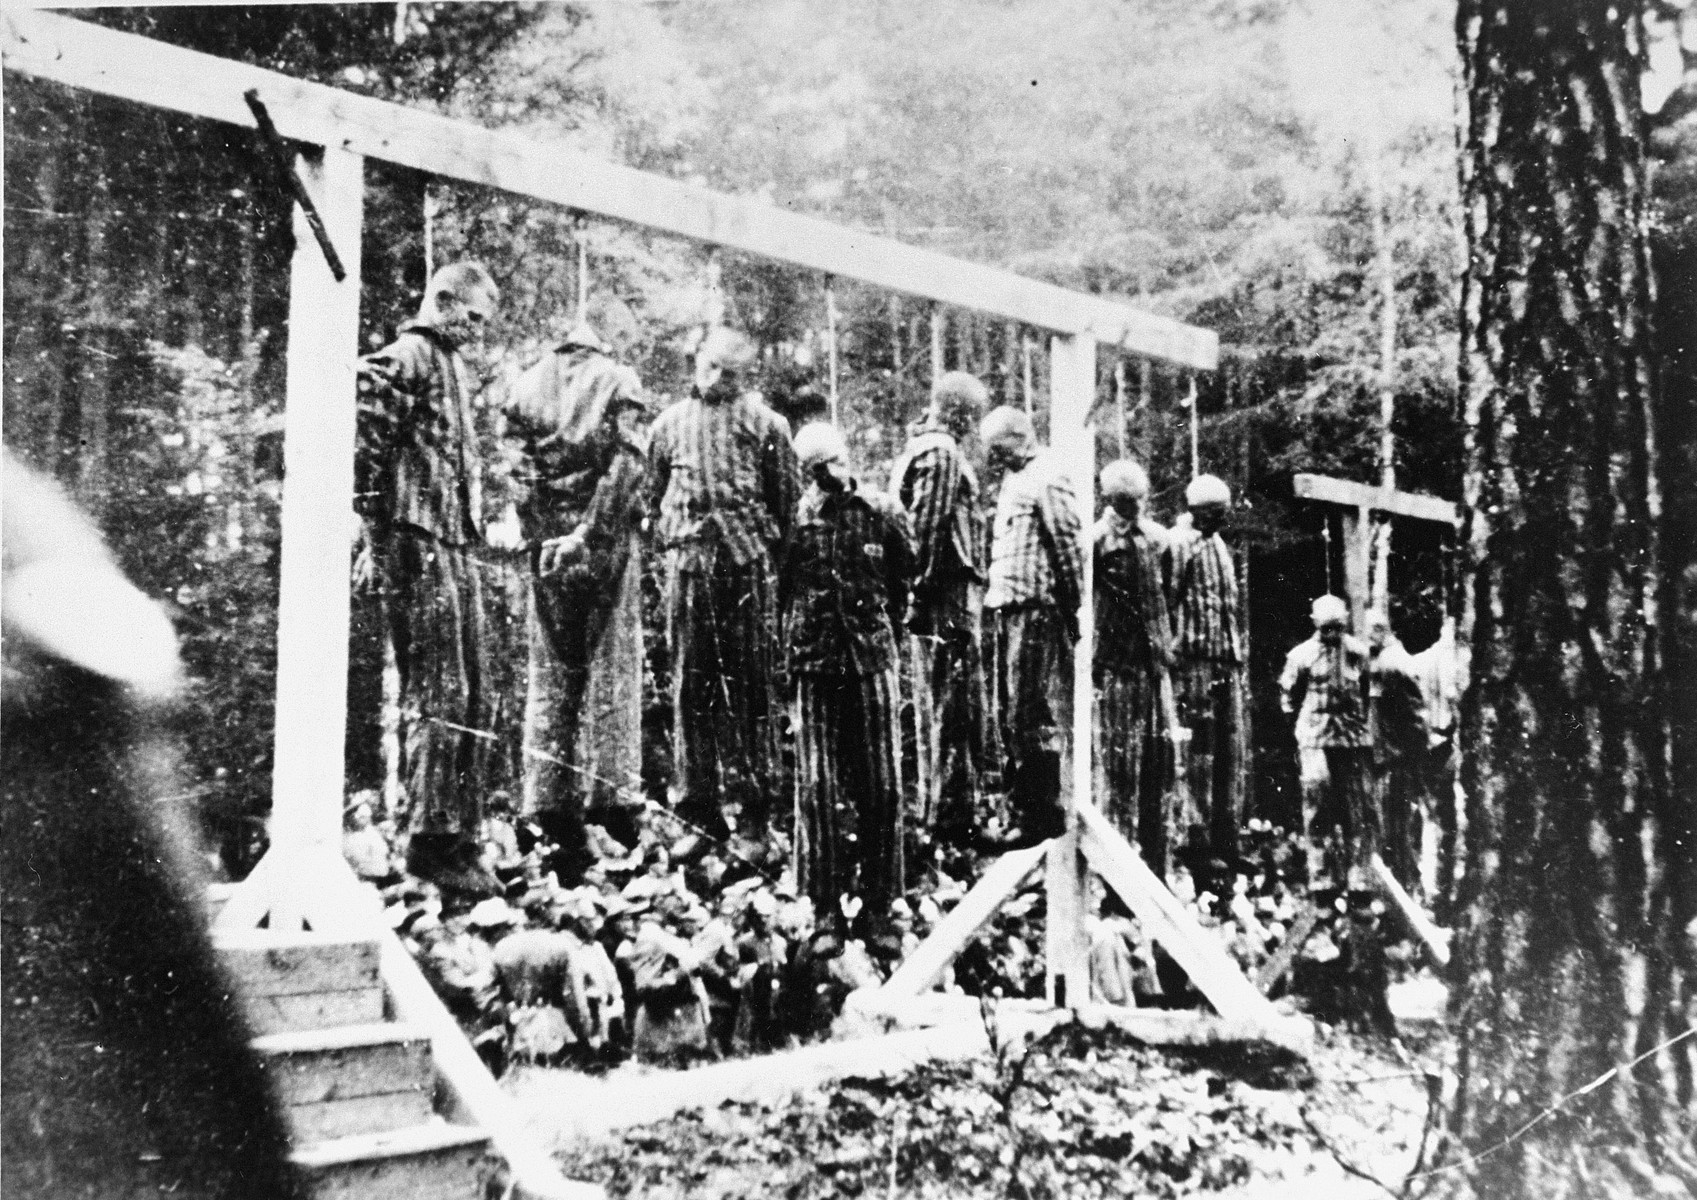 "Twenty concentration camp prisoners, most of them Jewish, hang on gallows in a forest near Buchenwald after the murder of a German policeman.  Rules regarding the punishment of prisoners were made theoretically uniform in German concentration camps by Theodor Eicke's ""Camp Ordinance"" (Lagerordnung). Written during his tenure as the commandant of Dachau in 1933-1934, the ""Ordinance"" stipulated specific punishments for certain misdeeds within the camp.  However, although serious corporal and capital punishments required the permission of the central SS authorities in Berlin, the camp commandant often acted as he pleased.  After accusations had been made and judged, ""regular punishments"", including the withholding of food, hard labor, solitary confinement, beating, and execution, were announced at the daily roll-call (appelle), and carried out immediately.  If a prisoner injured the SS in any way, collective punishments were often the result, as in this photo where 20 innocents were hanged in retaliation for the killing of a guard or policeman.  The details of the episode behind this picture are not known, but there is another like it:   On 13 May 1938, two Buchenwald prisoners named Bargatzky and Forster made an escape; rumors had it that during their flight they had killed a guard named Kallweit, near the camp sewage plant. The SS responded to the incident by severe collective retaliations, the least of which was a ban on smoking throughout the camp and the withholding of food on Sundays.  The SS also executed several members of the work detail to which Bargatzky and Forster had belonged, while 15 other members of the detail received 25 lashes.  Several other innocents were beaten to death, including a Communist prisoner from Leipzig named Hoeritzsch.  Eventually, Bargatzky and Forster were found and hanged in the Buchenwald Appellplatz in the presence of all the inmates.  Sources: ""Anklegeschrift in dem Verfahren Koch, Ilse, wegen Mordes u.a."" in Justiz und NS-Verbrechen, ed. Adelheid L. Rueter-Ehlermann and C.F. Rueter, 22 vols. (Amsterdam: University Press Amsterdam, 1968-81), vol. 7, nr. 262; ""Der 13 Mai 1938--ein schwarzer Tag im Lager,"" reprinted in Buchenwald: Mahnung und Verpflichtung, 1st ed. (Frankfurt: Roederberg, 1960), 181-184."